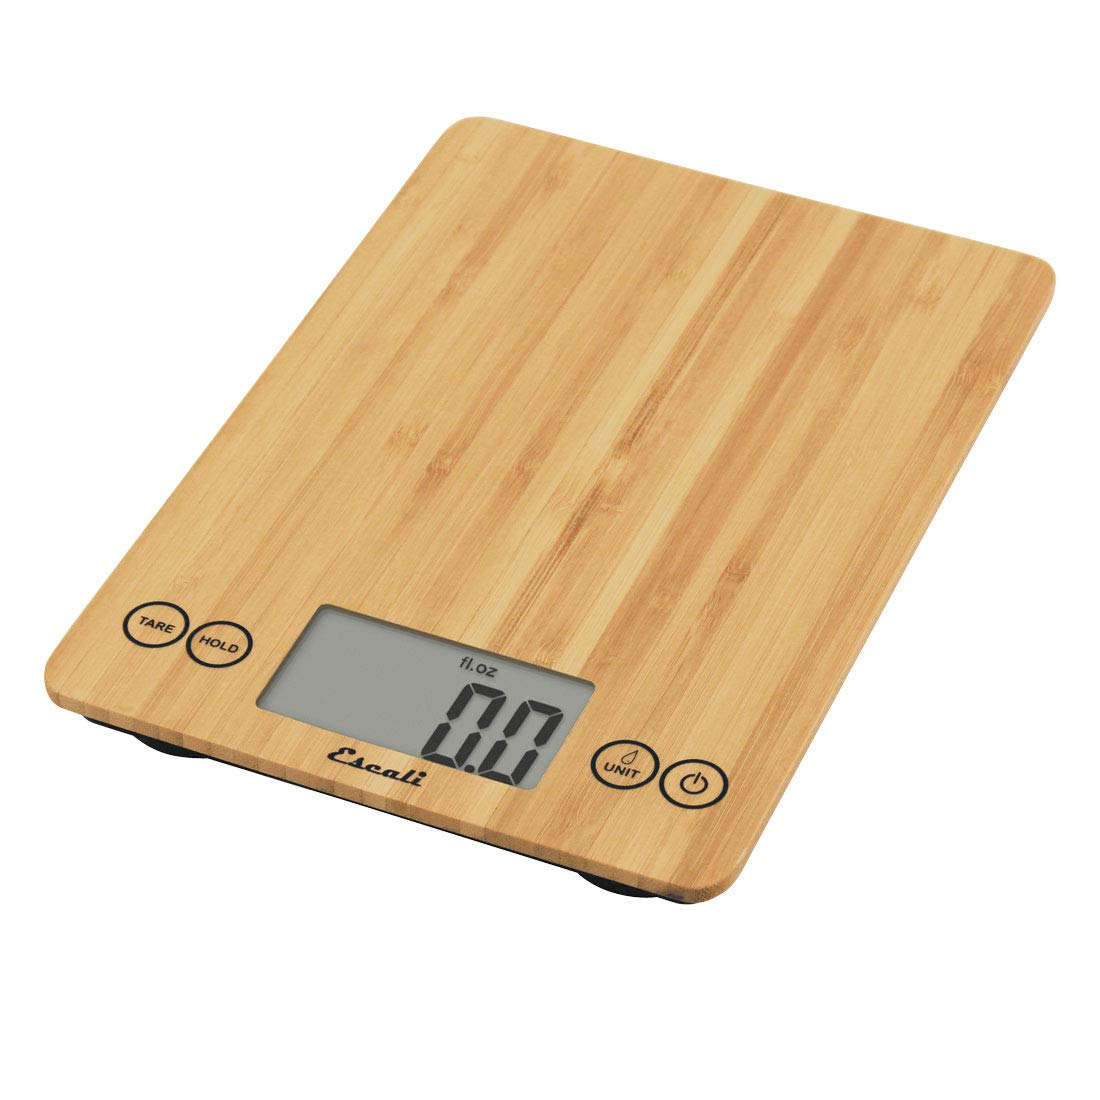 Escali ECO157 Arti Digital Kitchen Scale 15Lb/7Kg, Bamboo, 7 kg, Natural